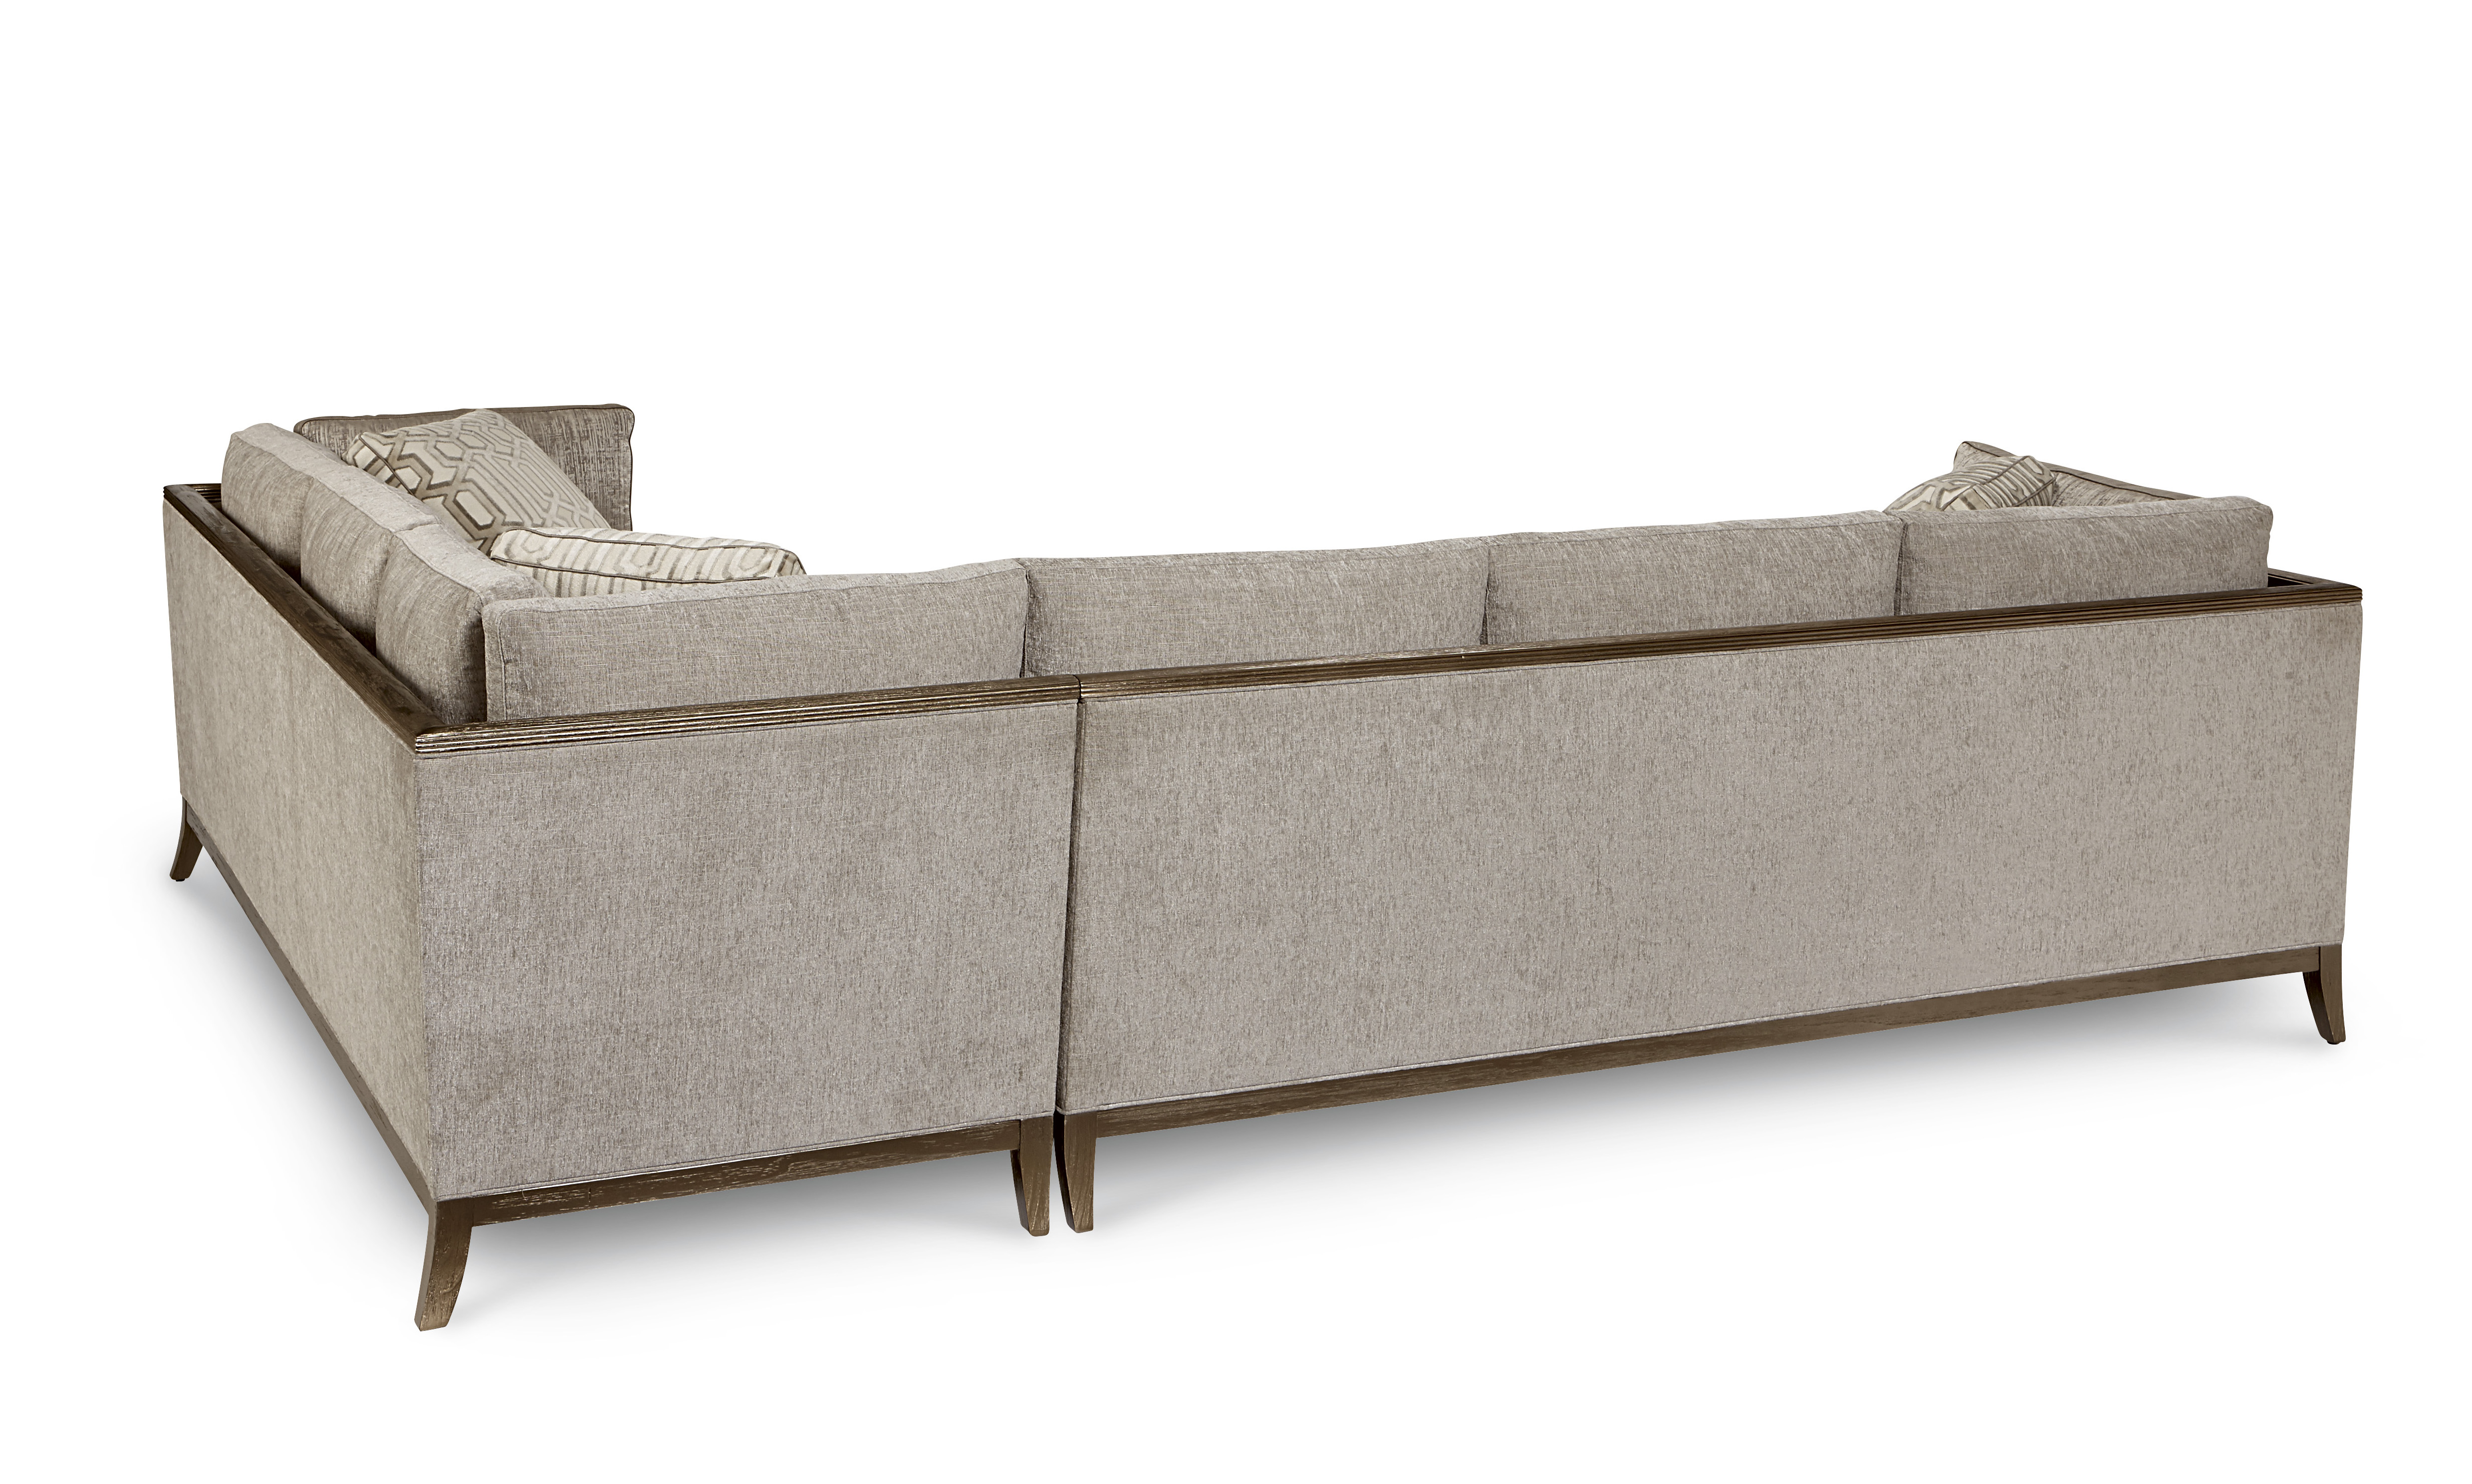 Peachy Cityscapes Astor Crystal Sectional Sofas And Sectionals Machost Co Dining Chair Design Ideas Machostcouk